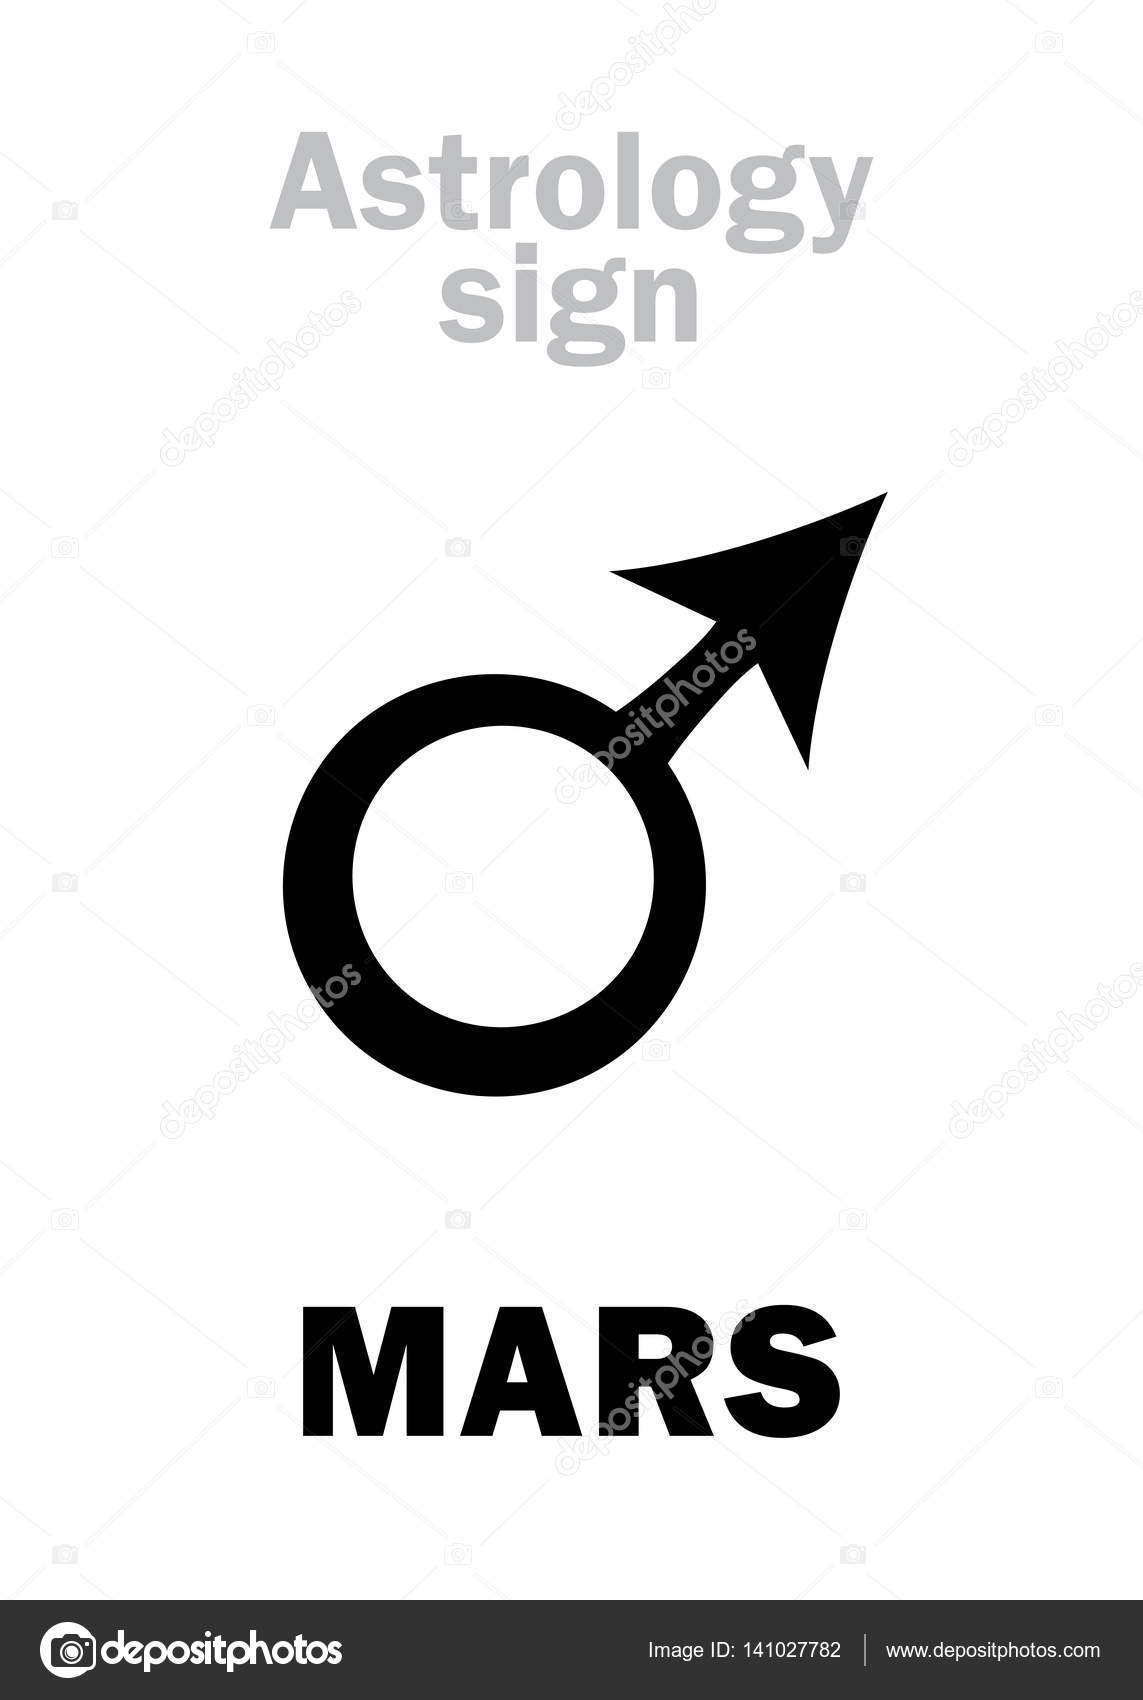 Astrology planet mars stock vector photon 141027782 astrology alphabet mars classic personal planet hieroglyphics character sign single symbol vector by photon biocorpaavc Choice Image